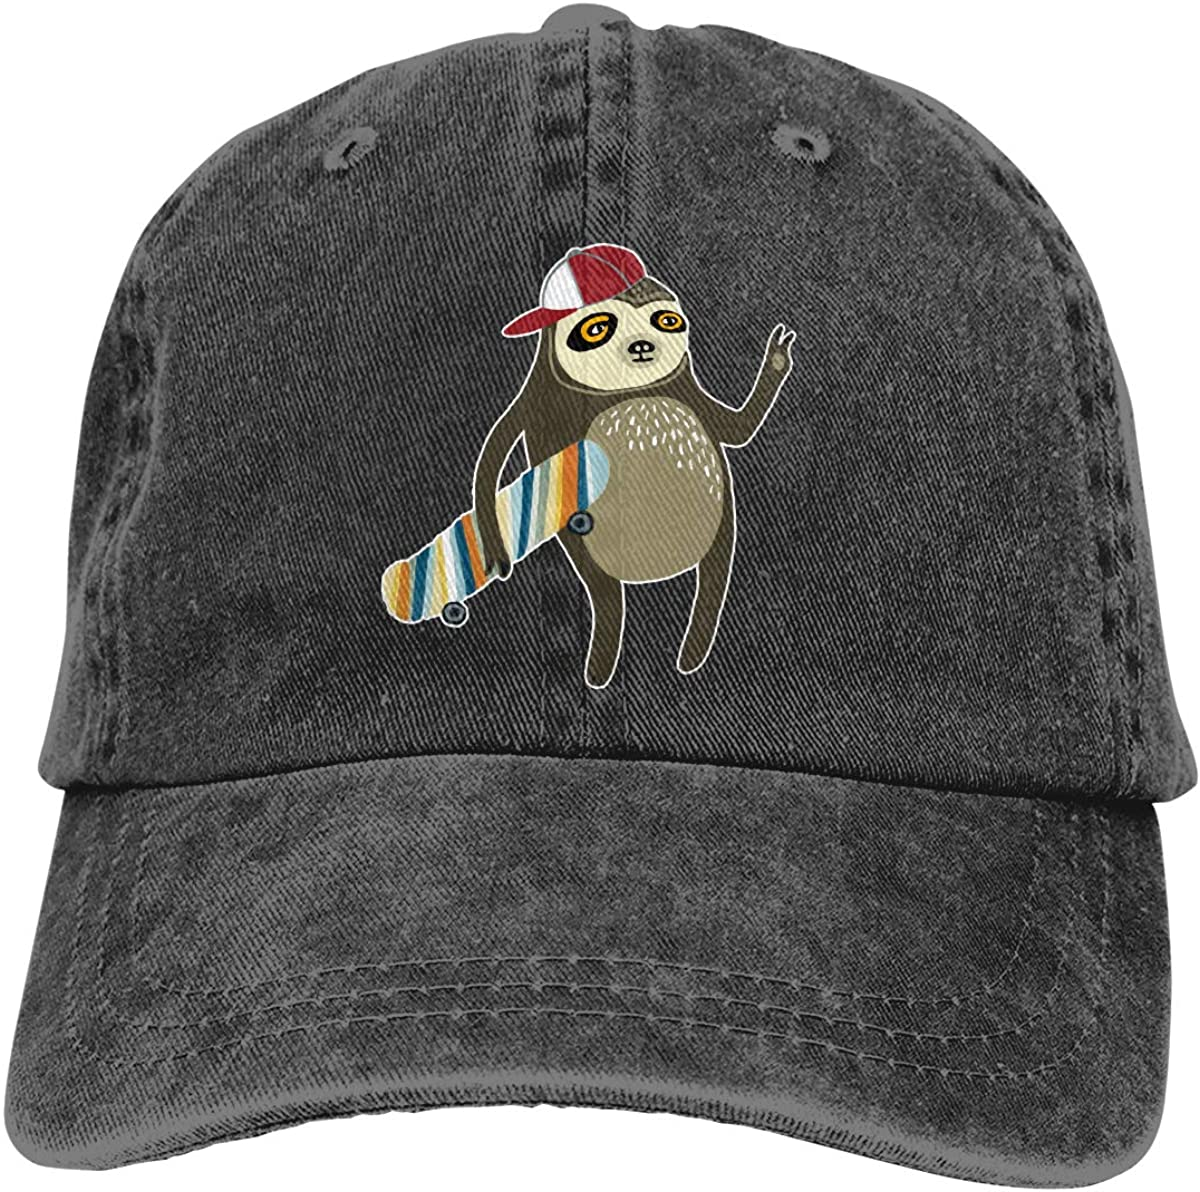 Unisex Cartoon Cockatiel Vintage Washed Dad Hat Fashion Adjustable Baseball Cap